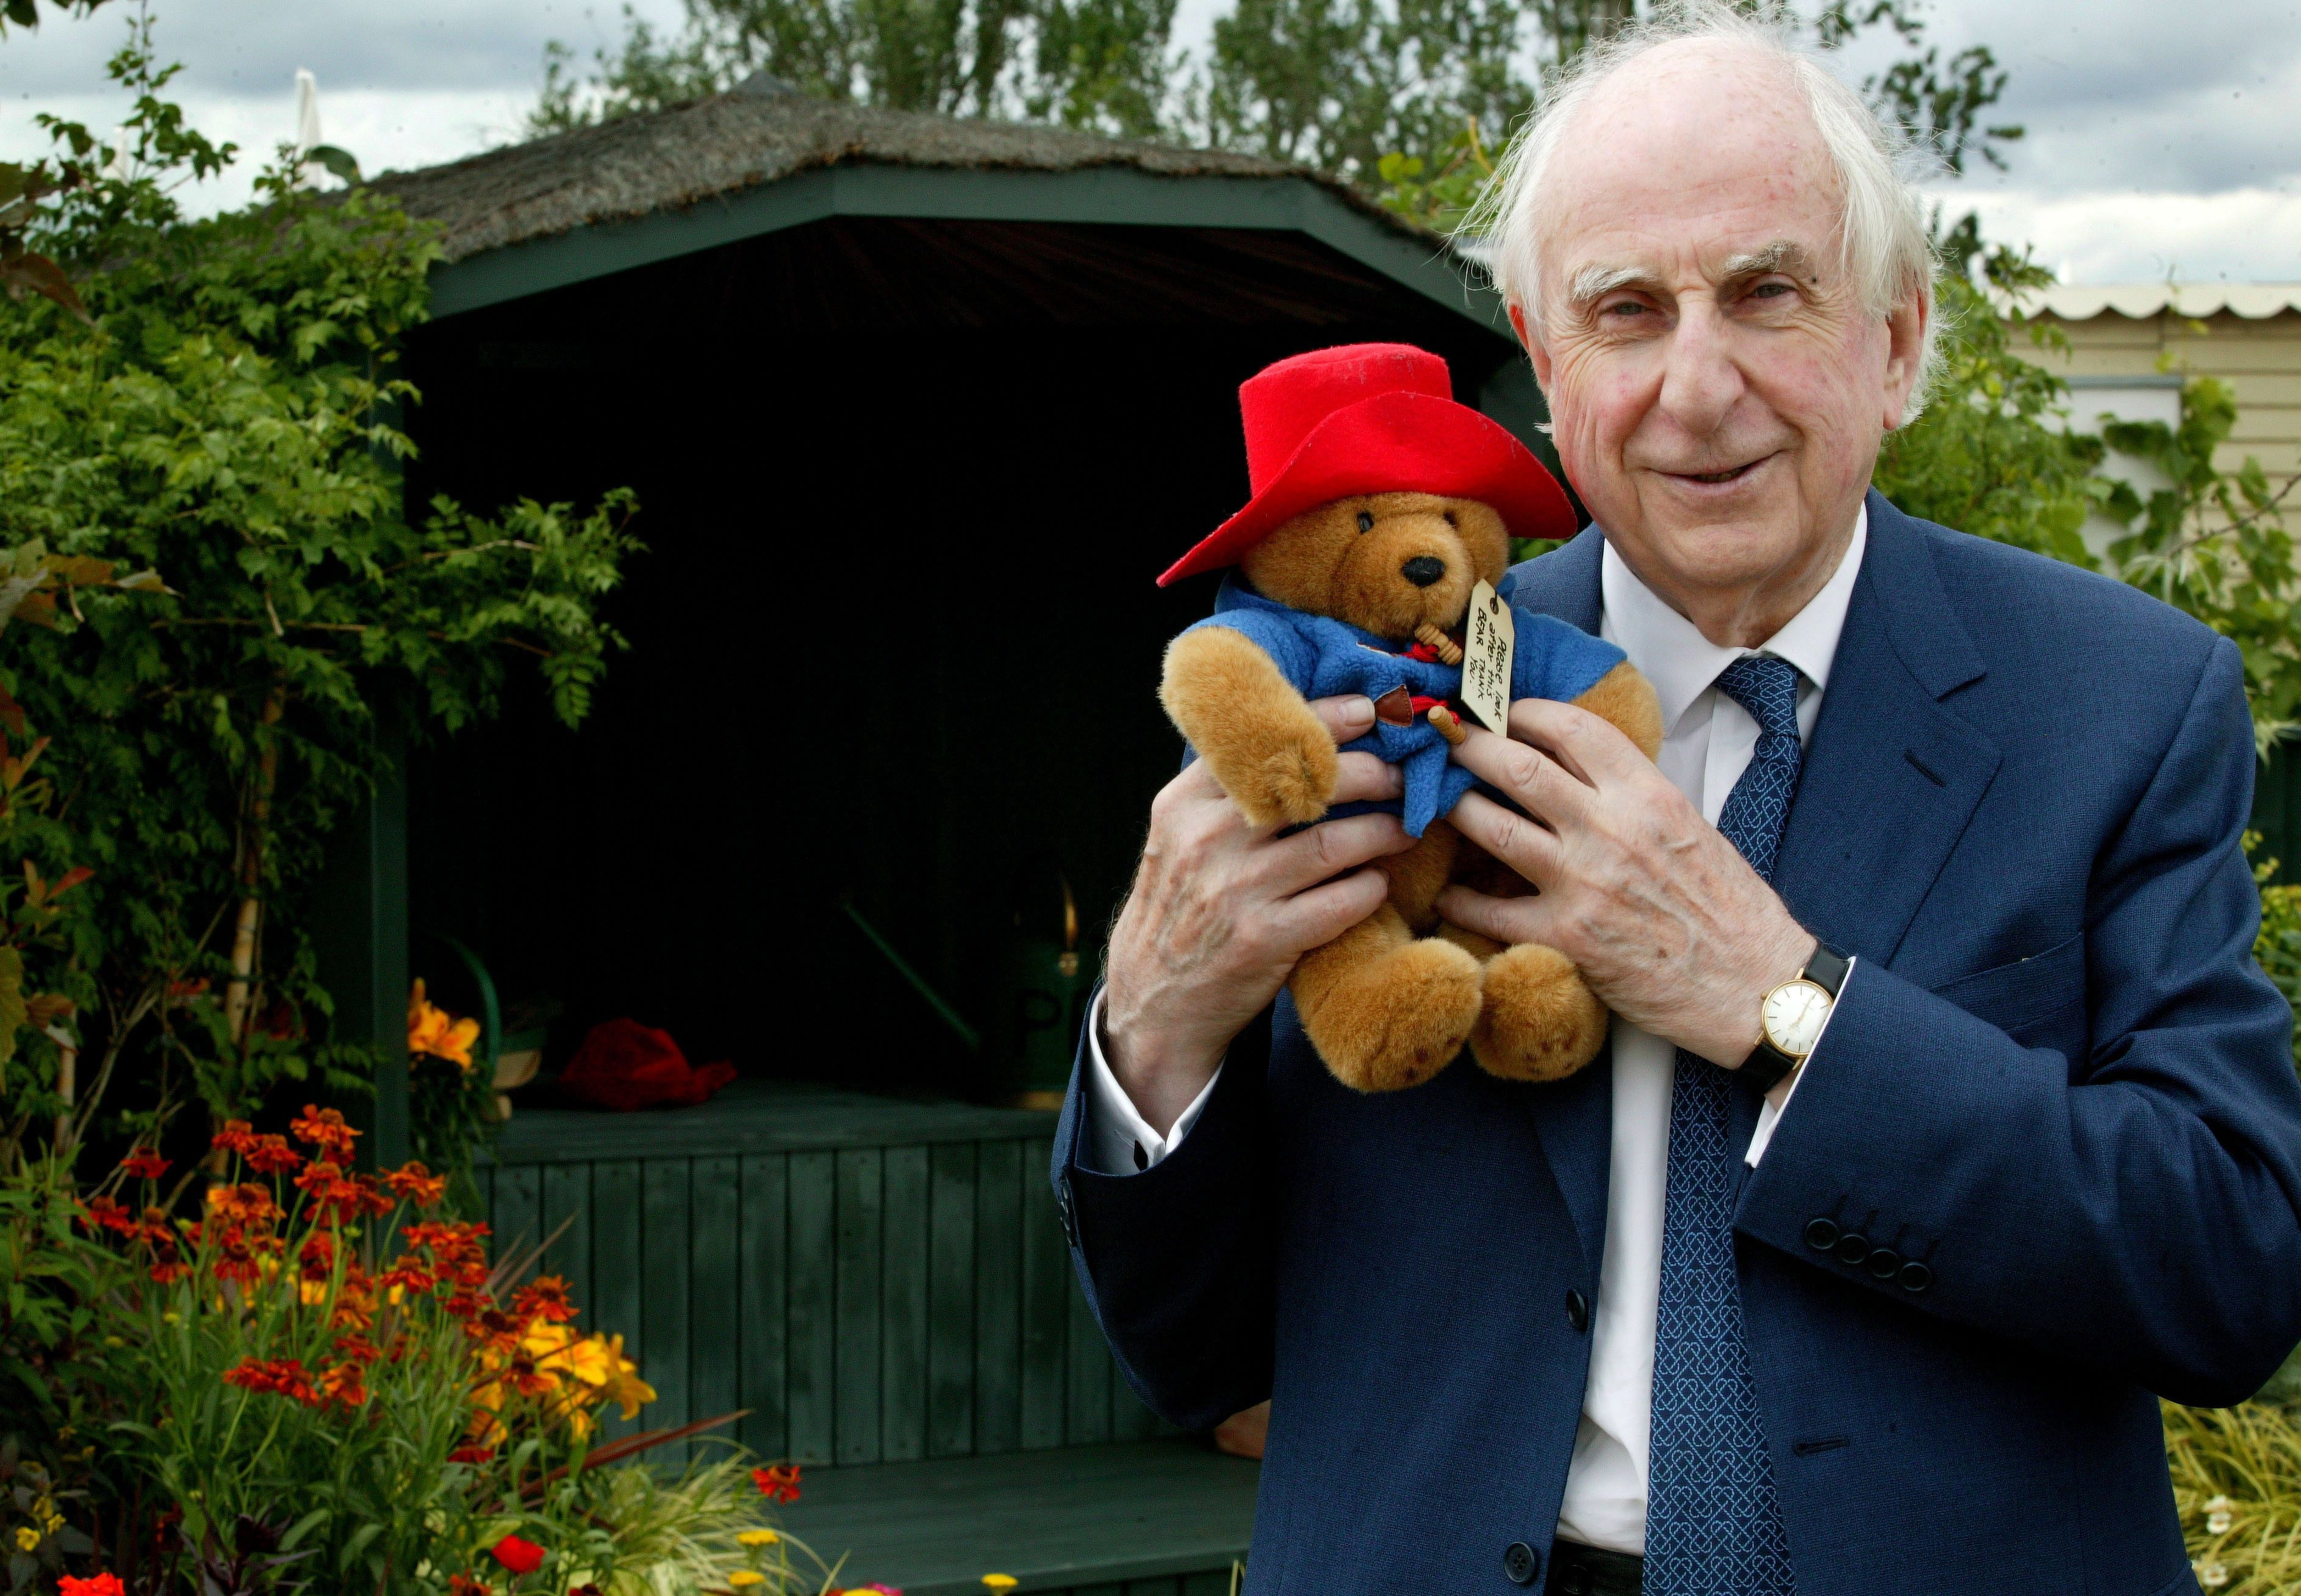 The Hampton Court Palace Flower Show 2005 Press day, Hampton Court Palace, London, Author of the Paddington Bear books, Michael Bond, in the Action Medical Research garden. (Photo by Avery Cunliffe/Photoshot/Getty Images)